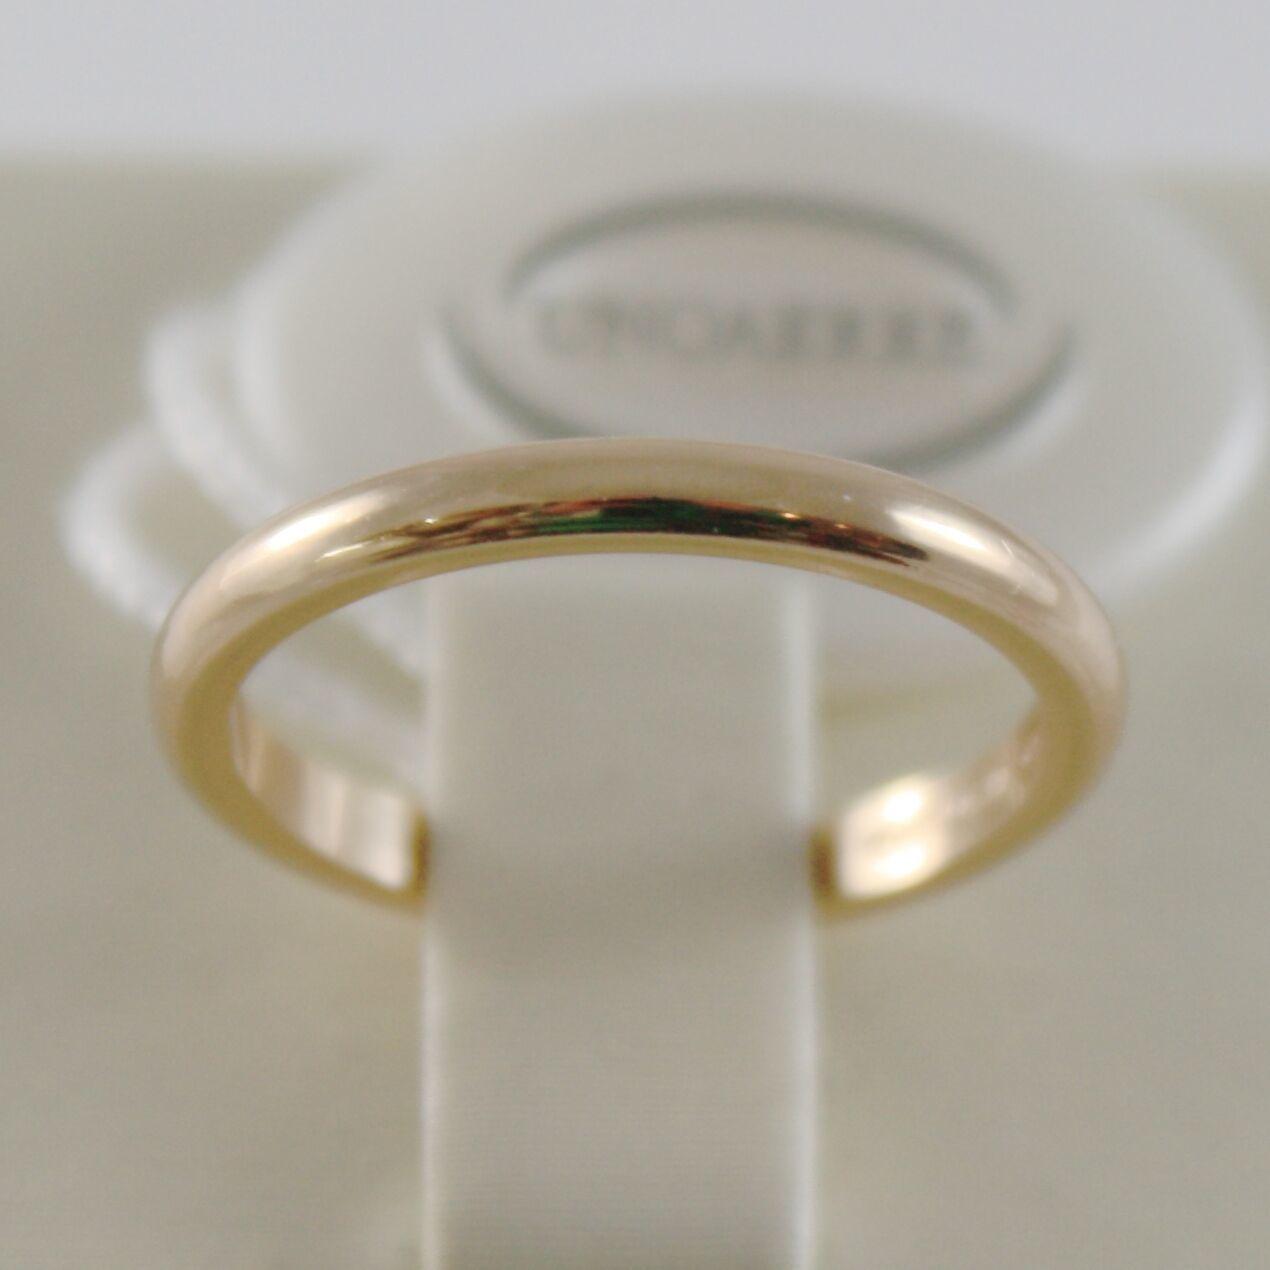 SOLID 18K YELLOW GOLD WEDDING BAND UNOAERRE RING 3 GRAMS MARRIAGE MADE IN ITALY